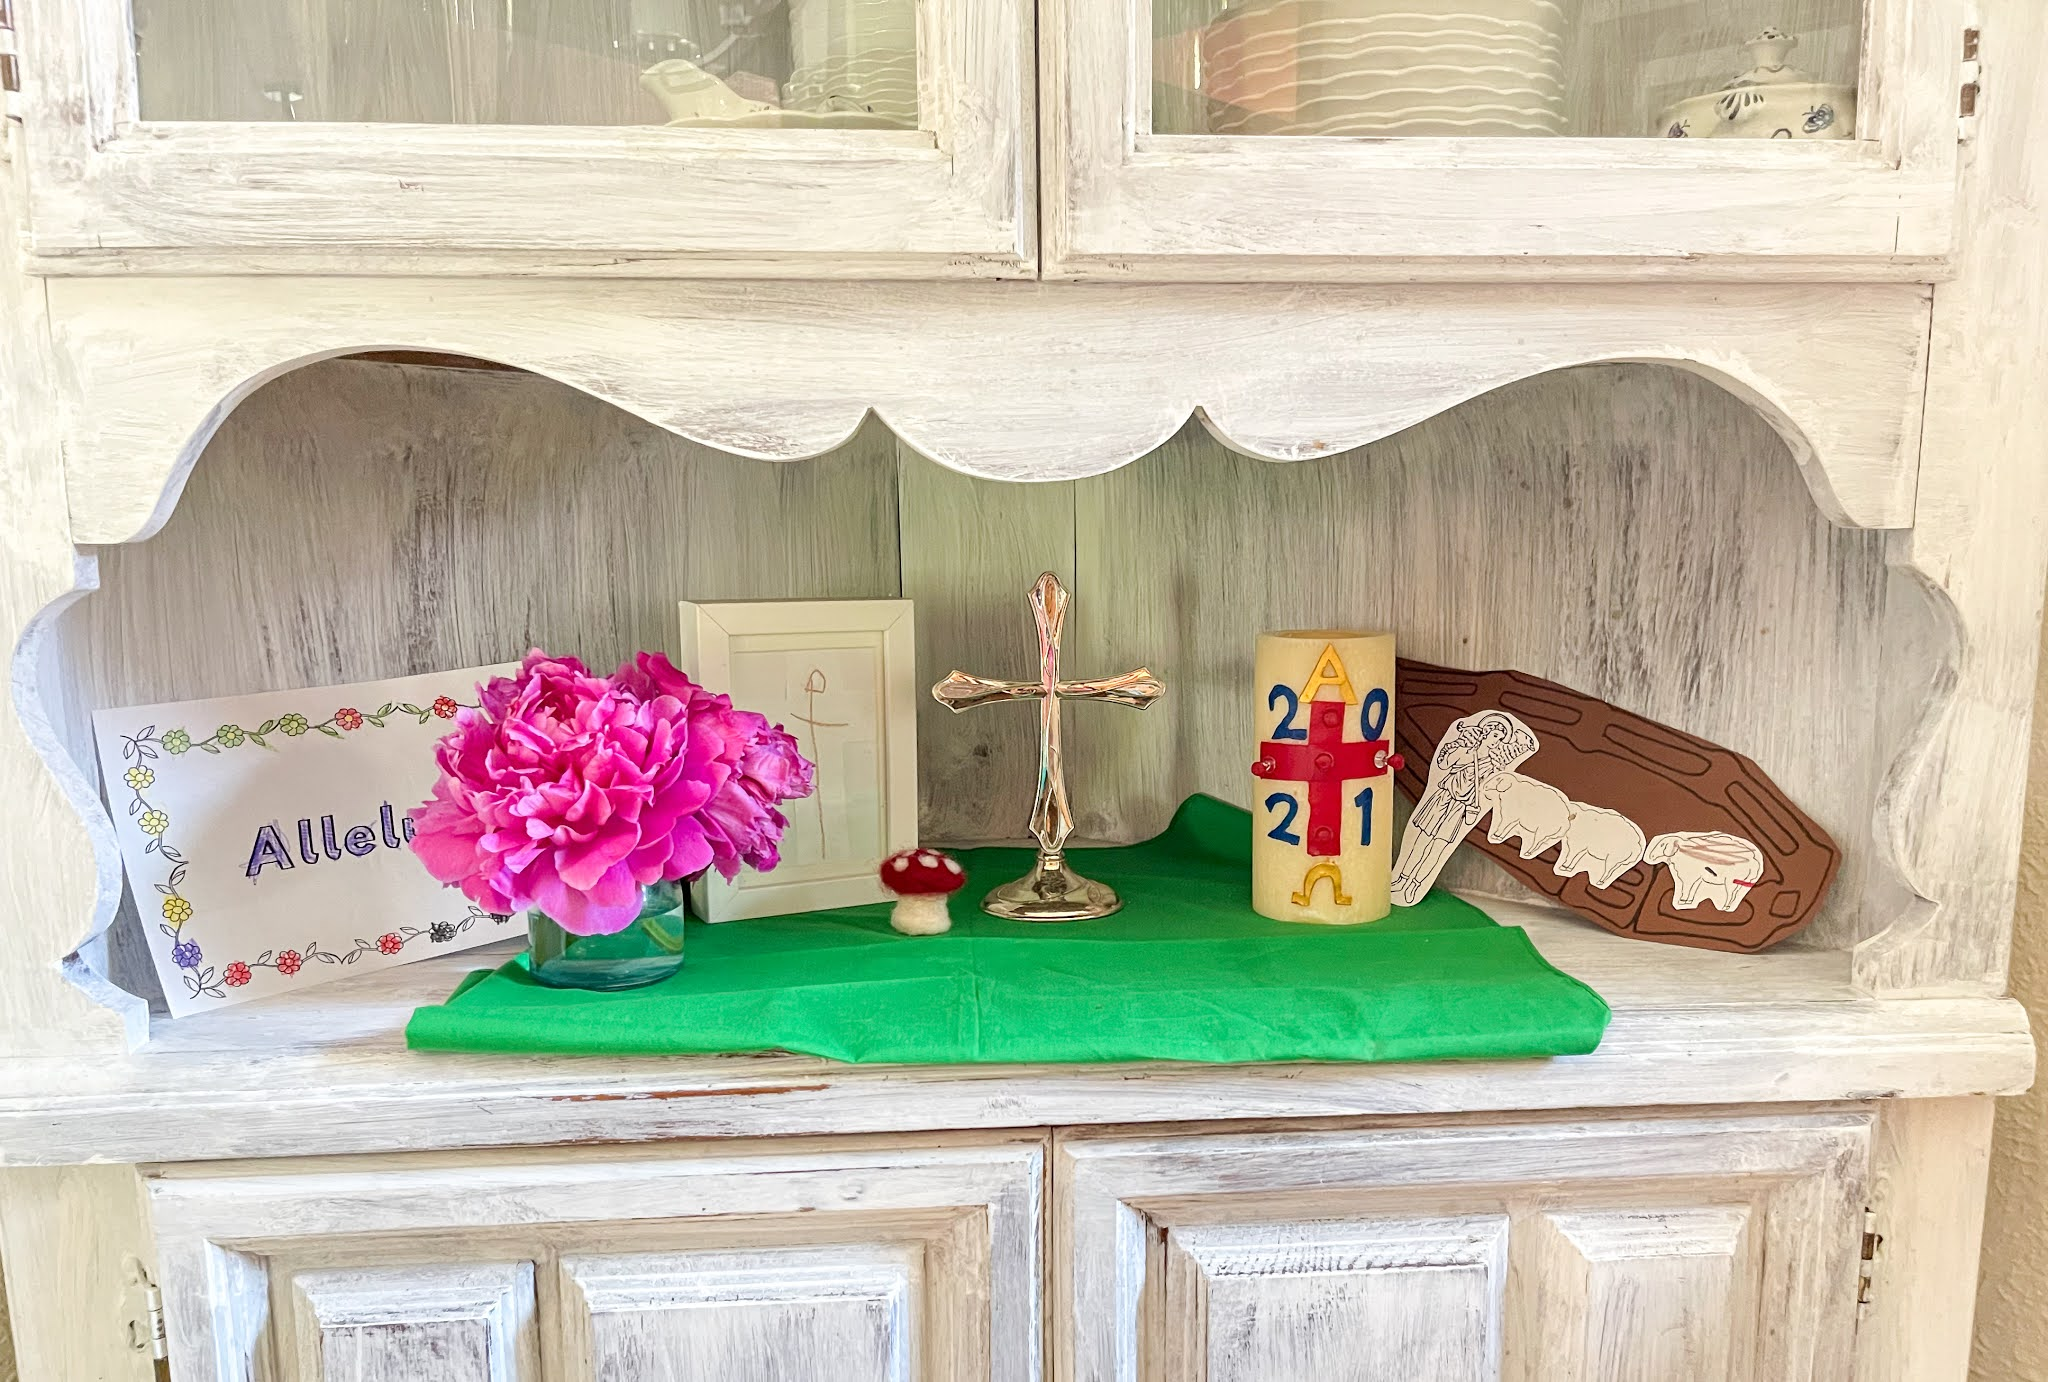 Here's a look at our Catechesis of the Good Shepherd and Montessori inspired children's prayer area in our Montessori home.